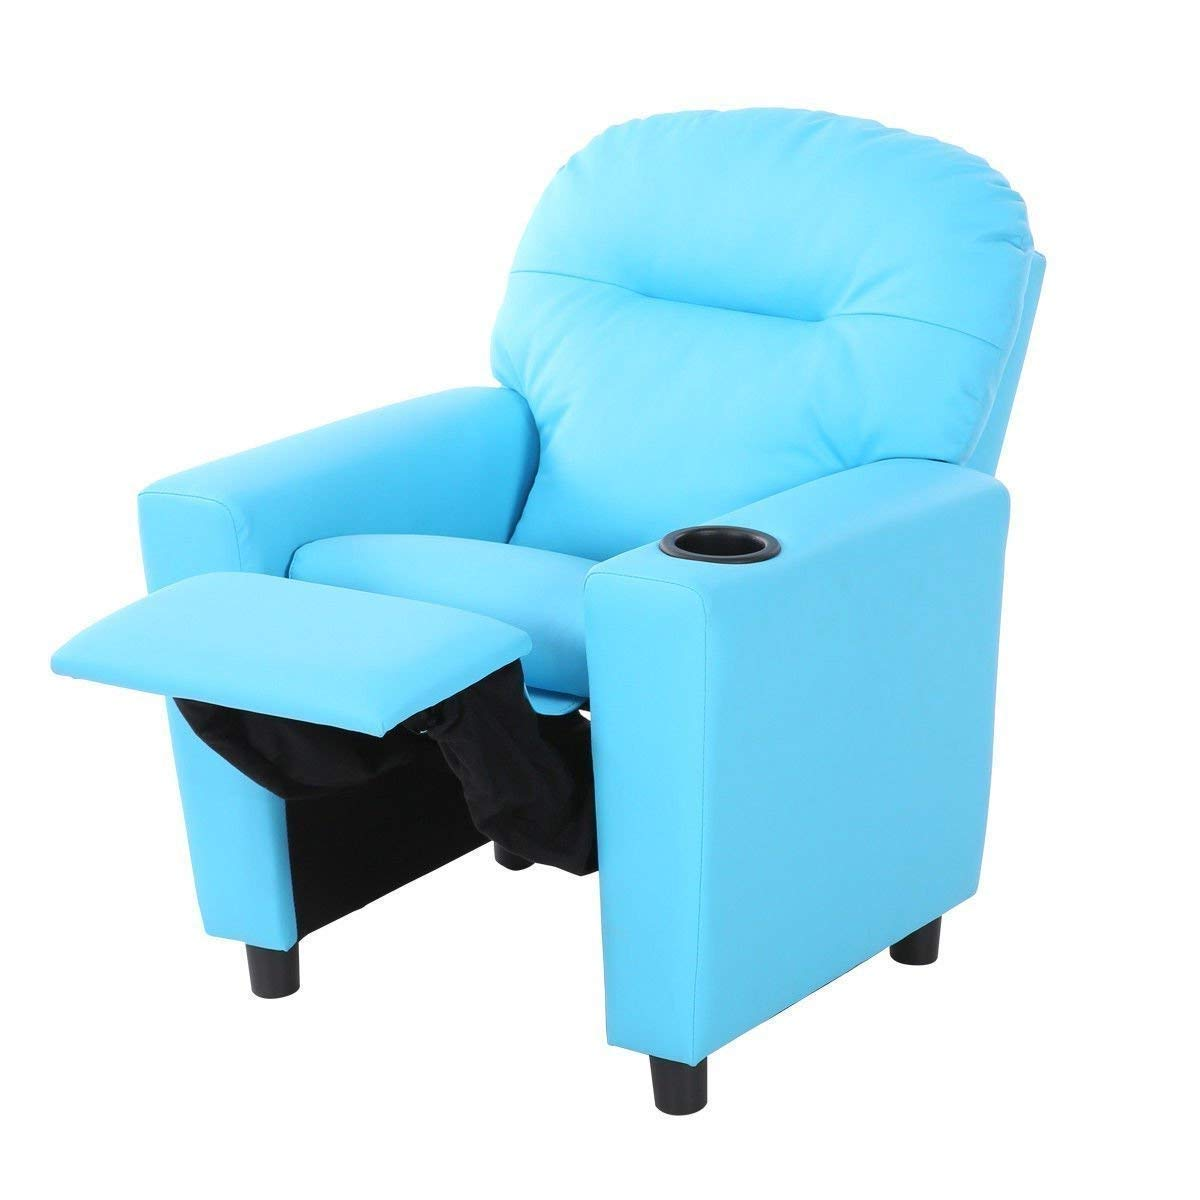 Amazing Amazon.com: HONEY JOY Contemporary Kids Recliner, PU Leather Lounge  Furniture For Boys U0026 Girls W/Cup Holder, Children Sofa Chair (Blue):  Kitchen U0026 Dining